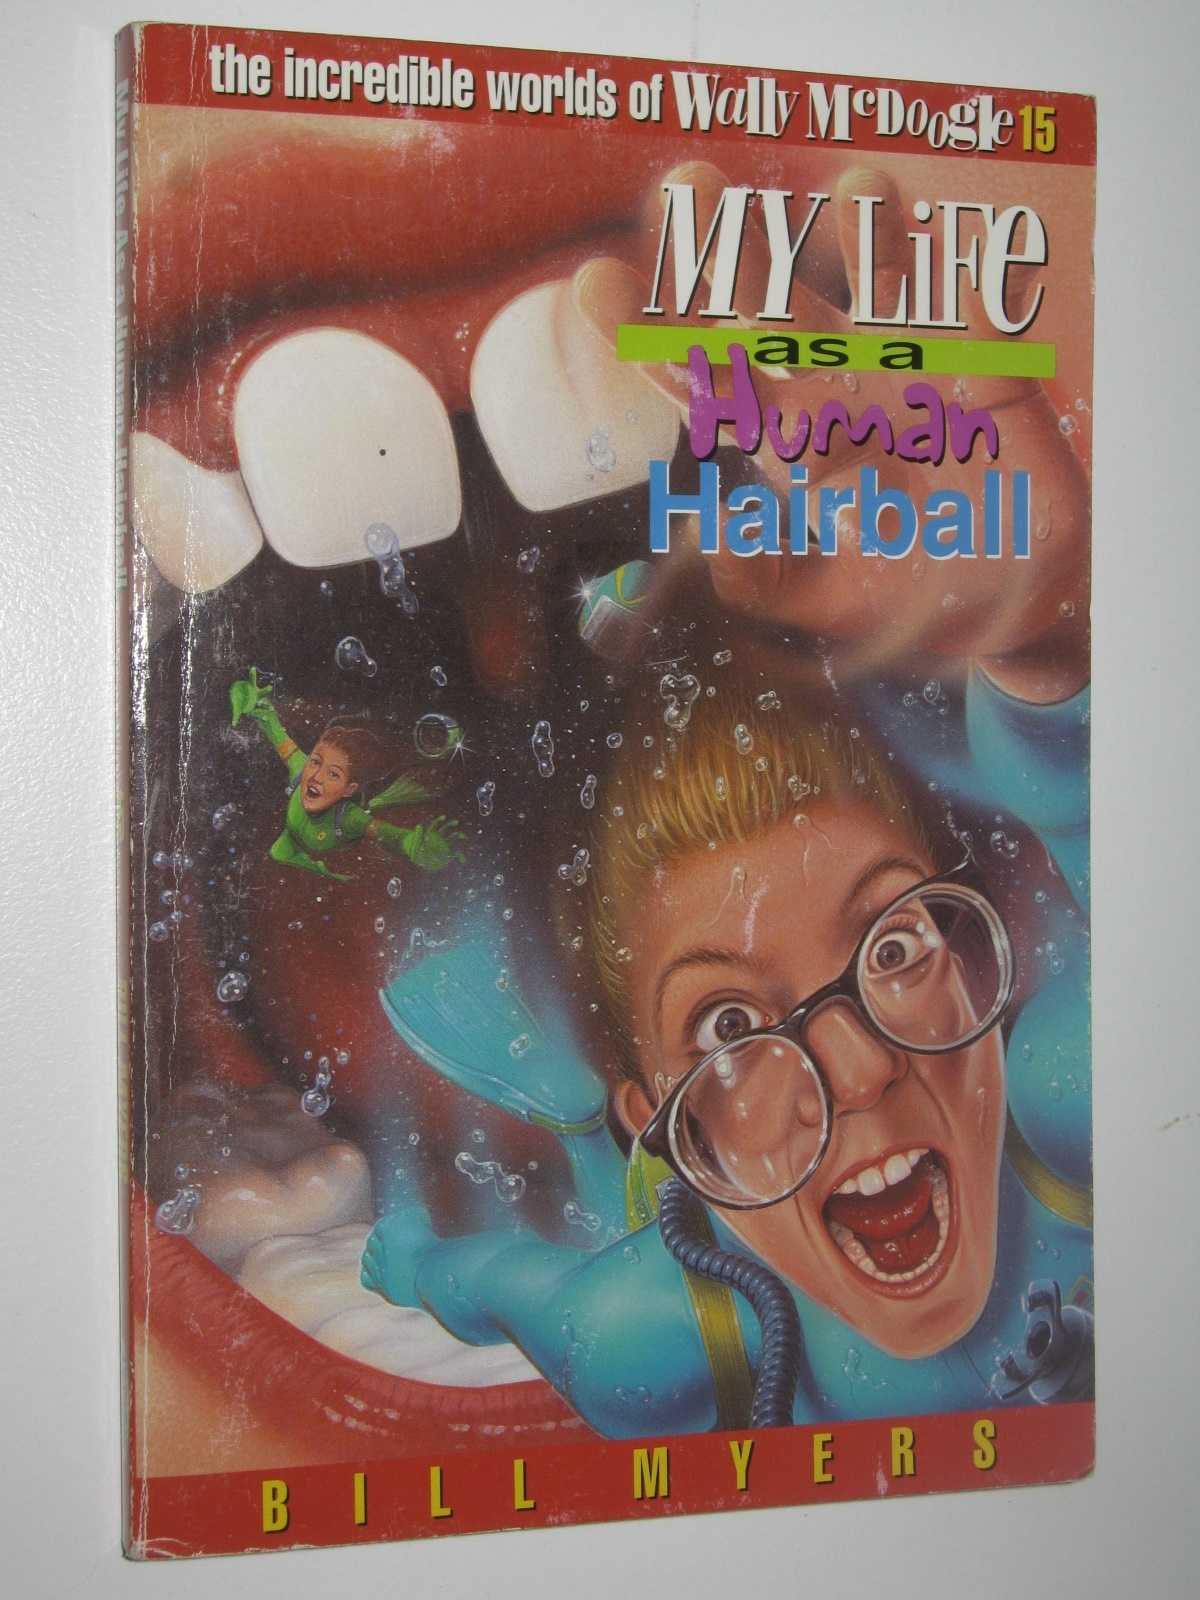 My Life as a Human Hairball - The Incredible Worlds of Wally McDoogle #15, Myers, Bill